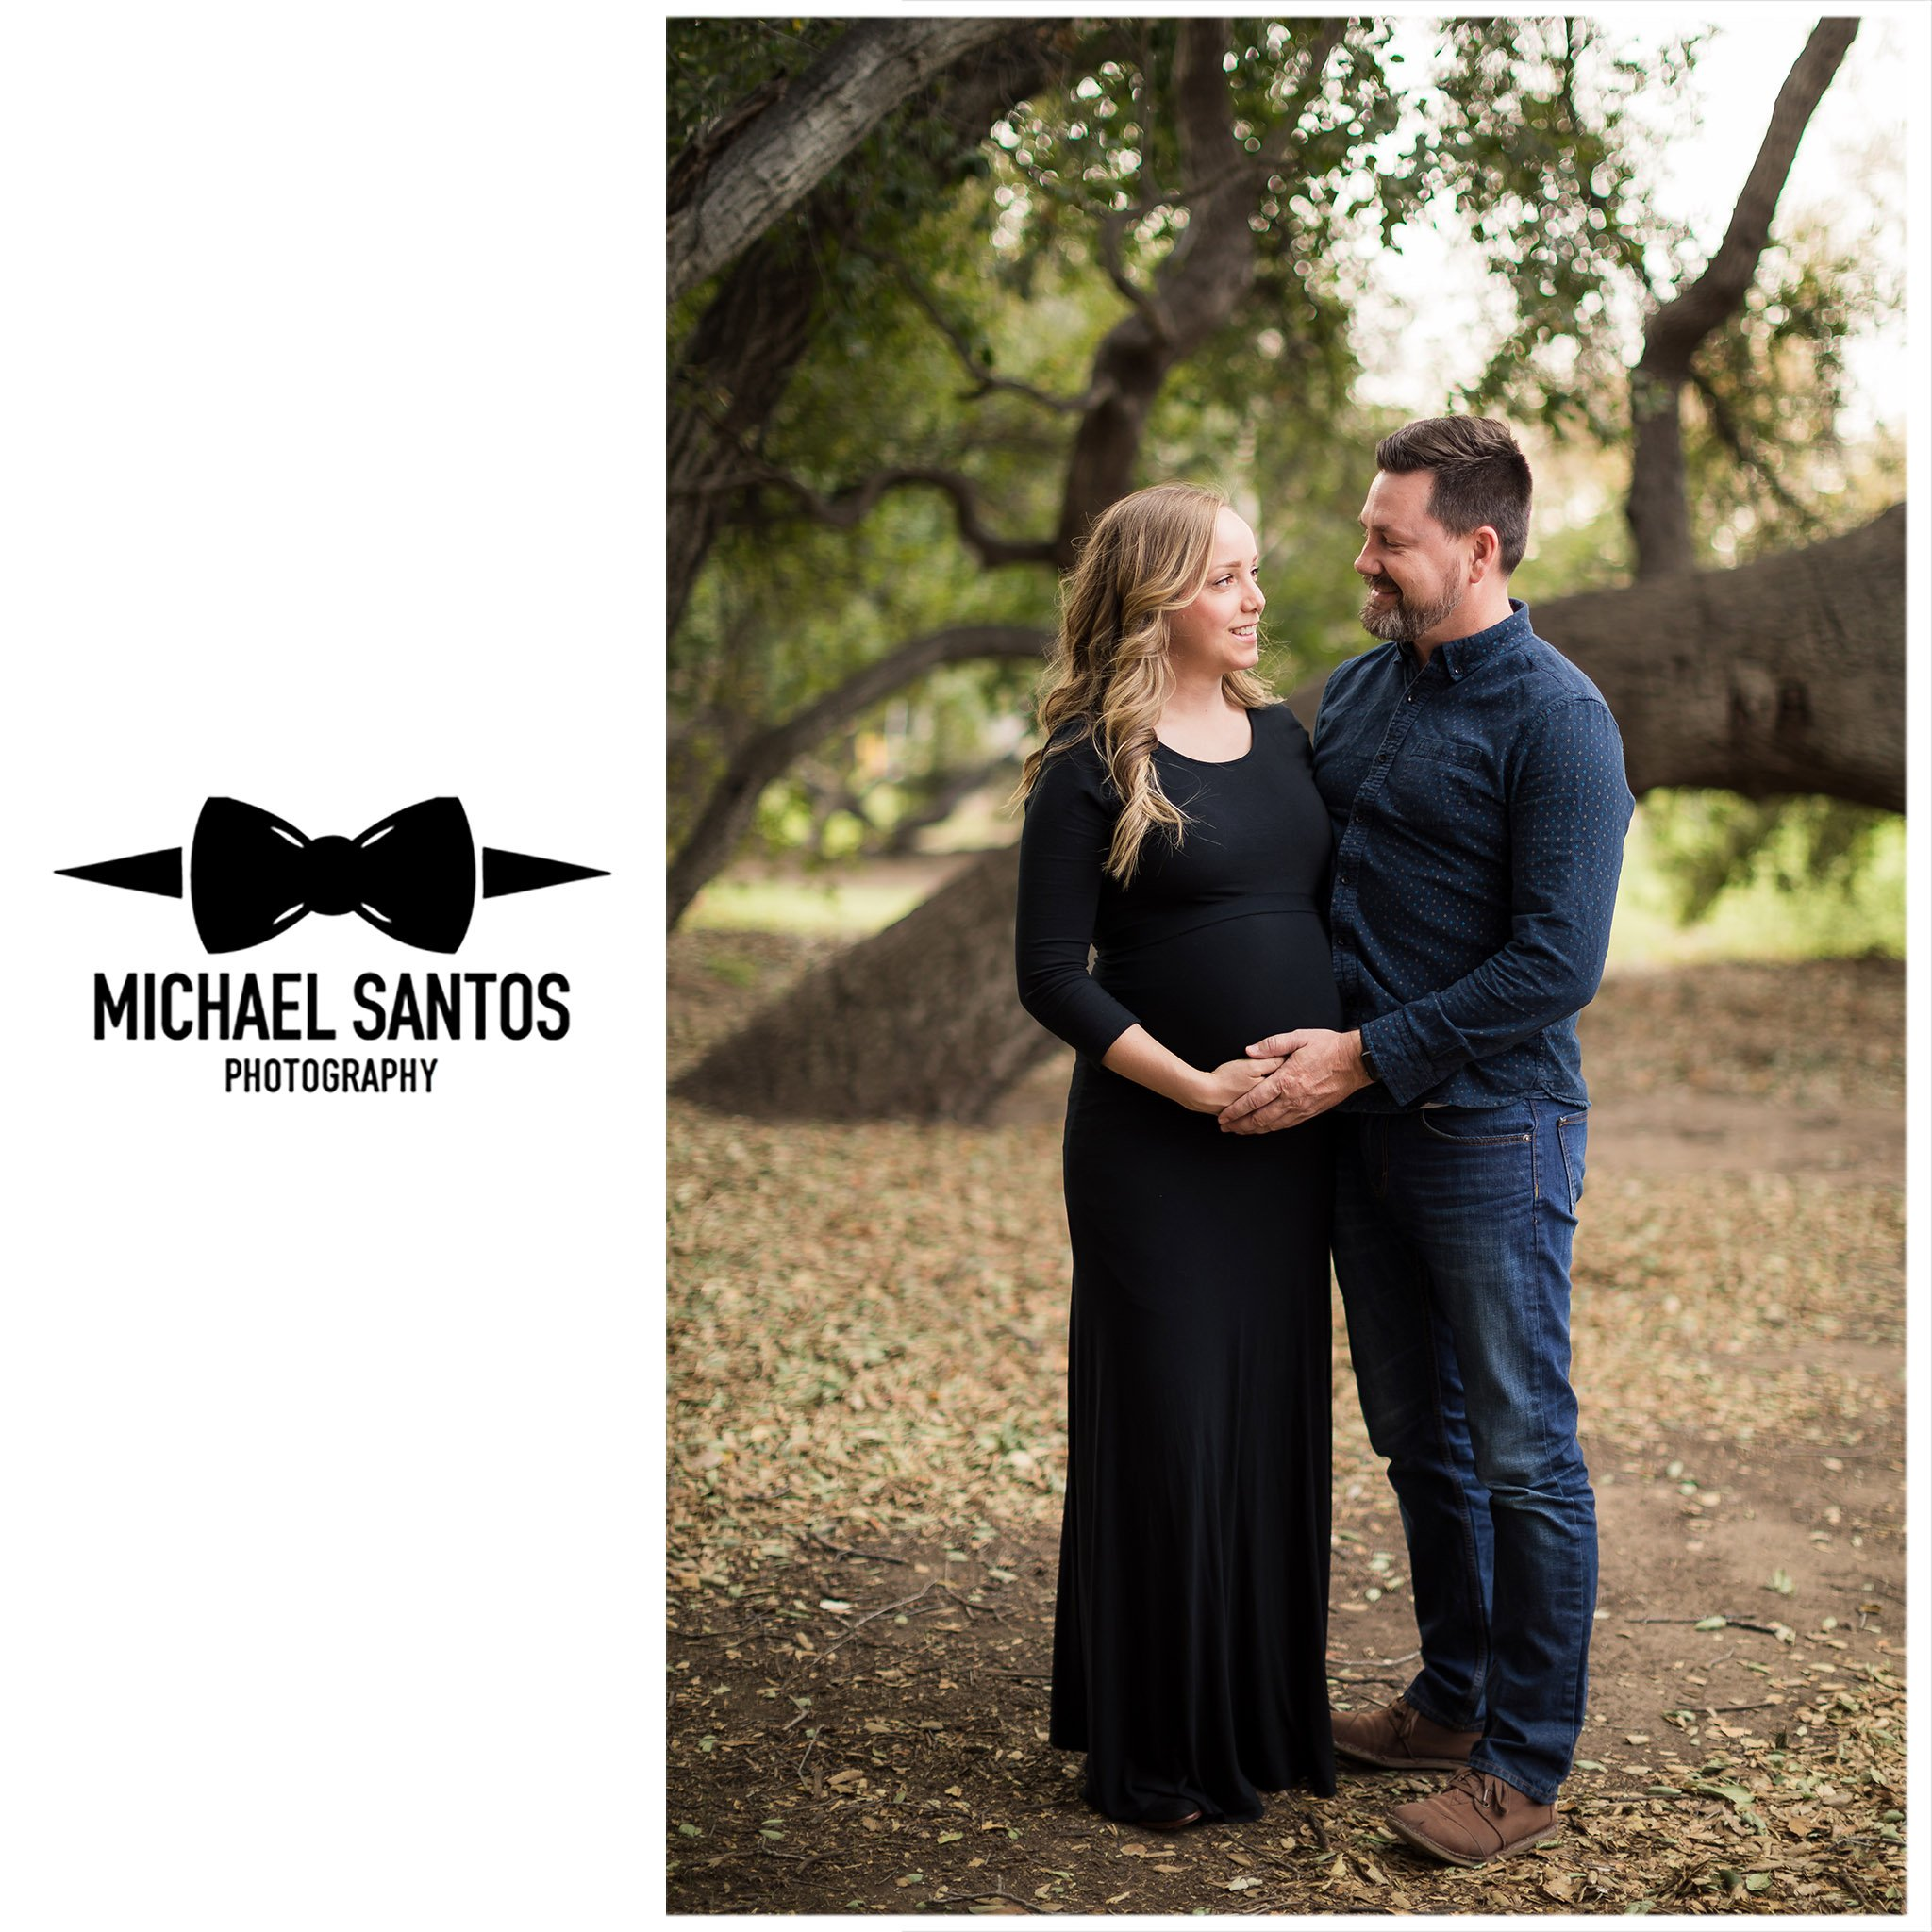 Maternity photo session with a husband and wife at Irvine Regional Park.